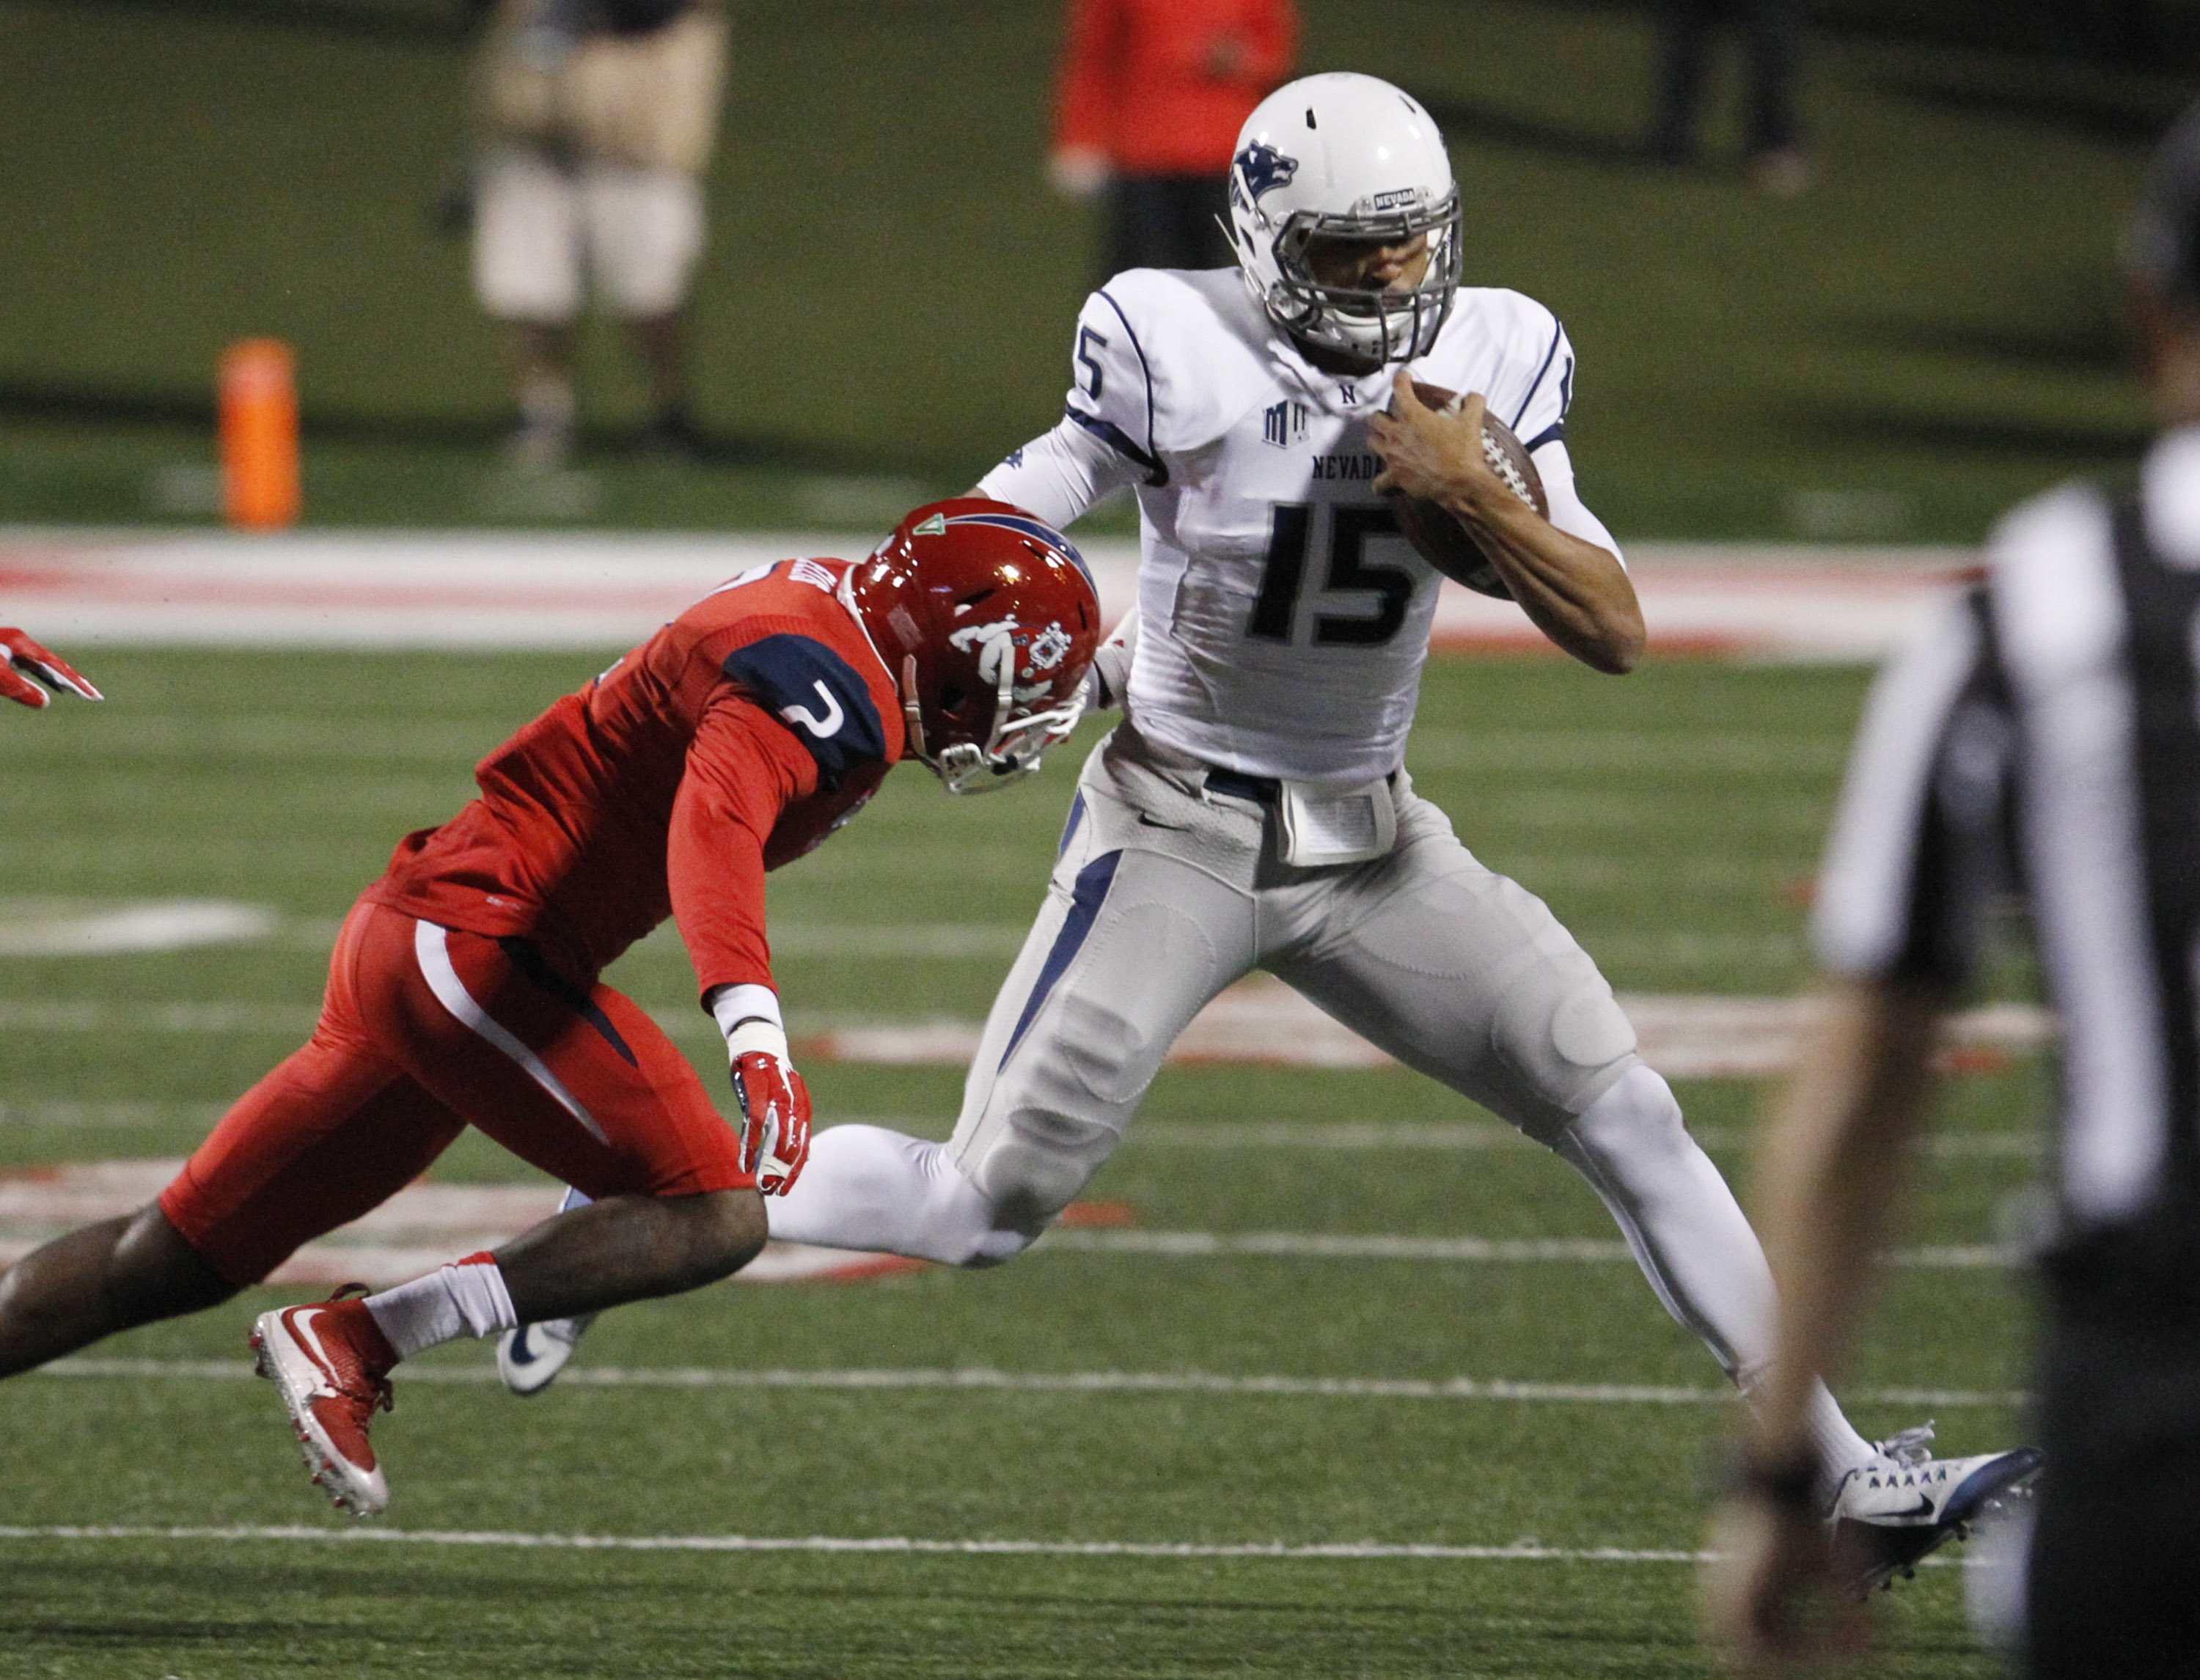 Nevada''s Tyler Stewart runs away from Fresno State's Jamal Ellis during the first half of an NCAA college football game in Fresno, Calif., Thursday, Nov. 5, 2015. (AP Photo/Gary Kazanjian)